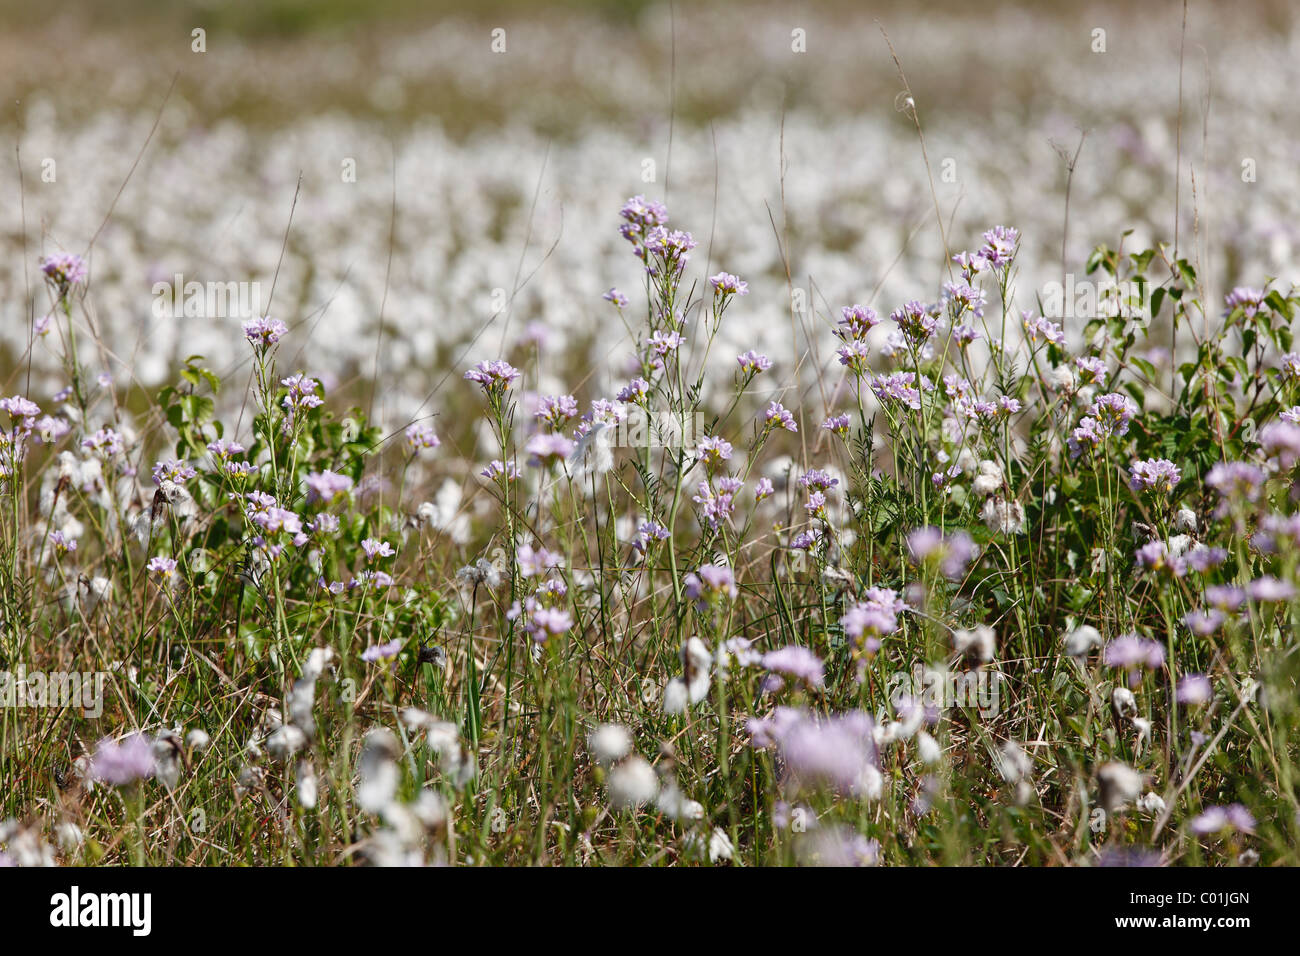 Cuckoo flower or Lady's smock (Cardamine pratensis), Ireland, Europe Stock Photo